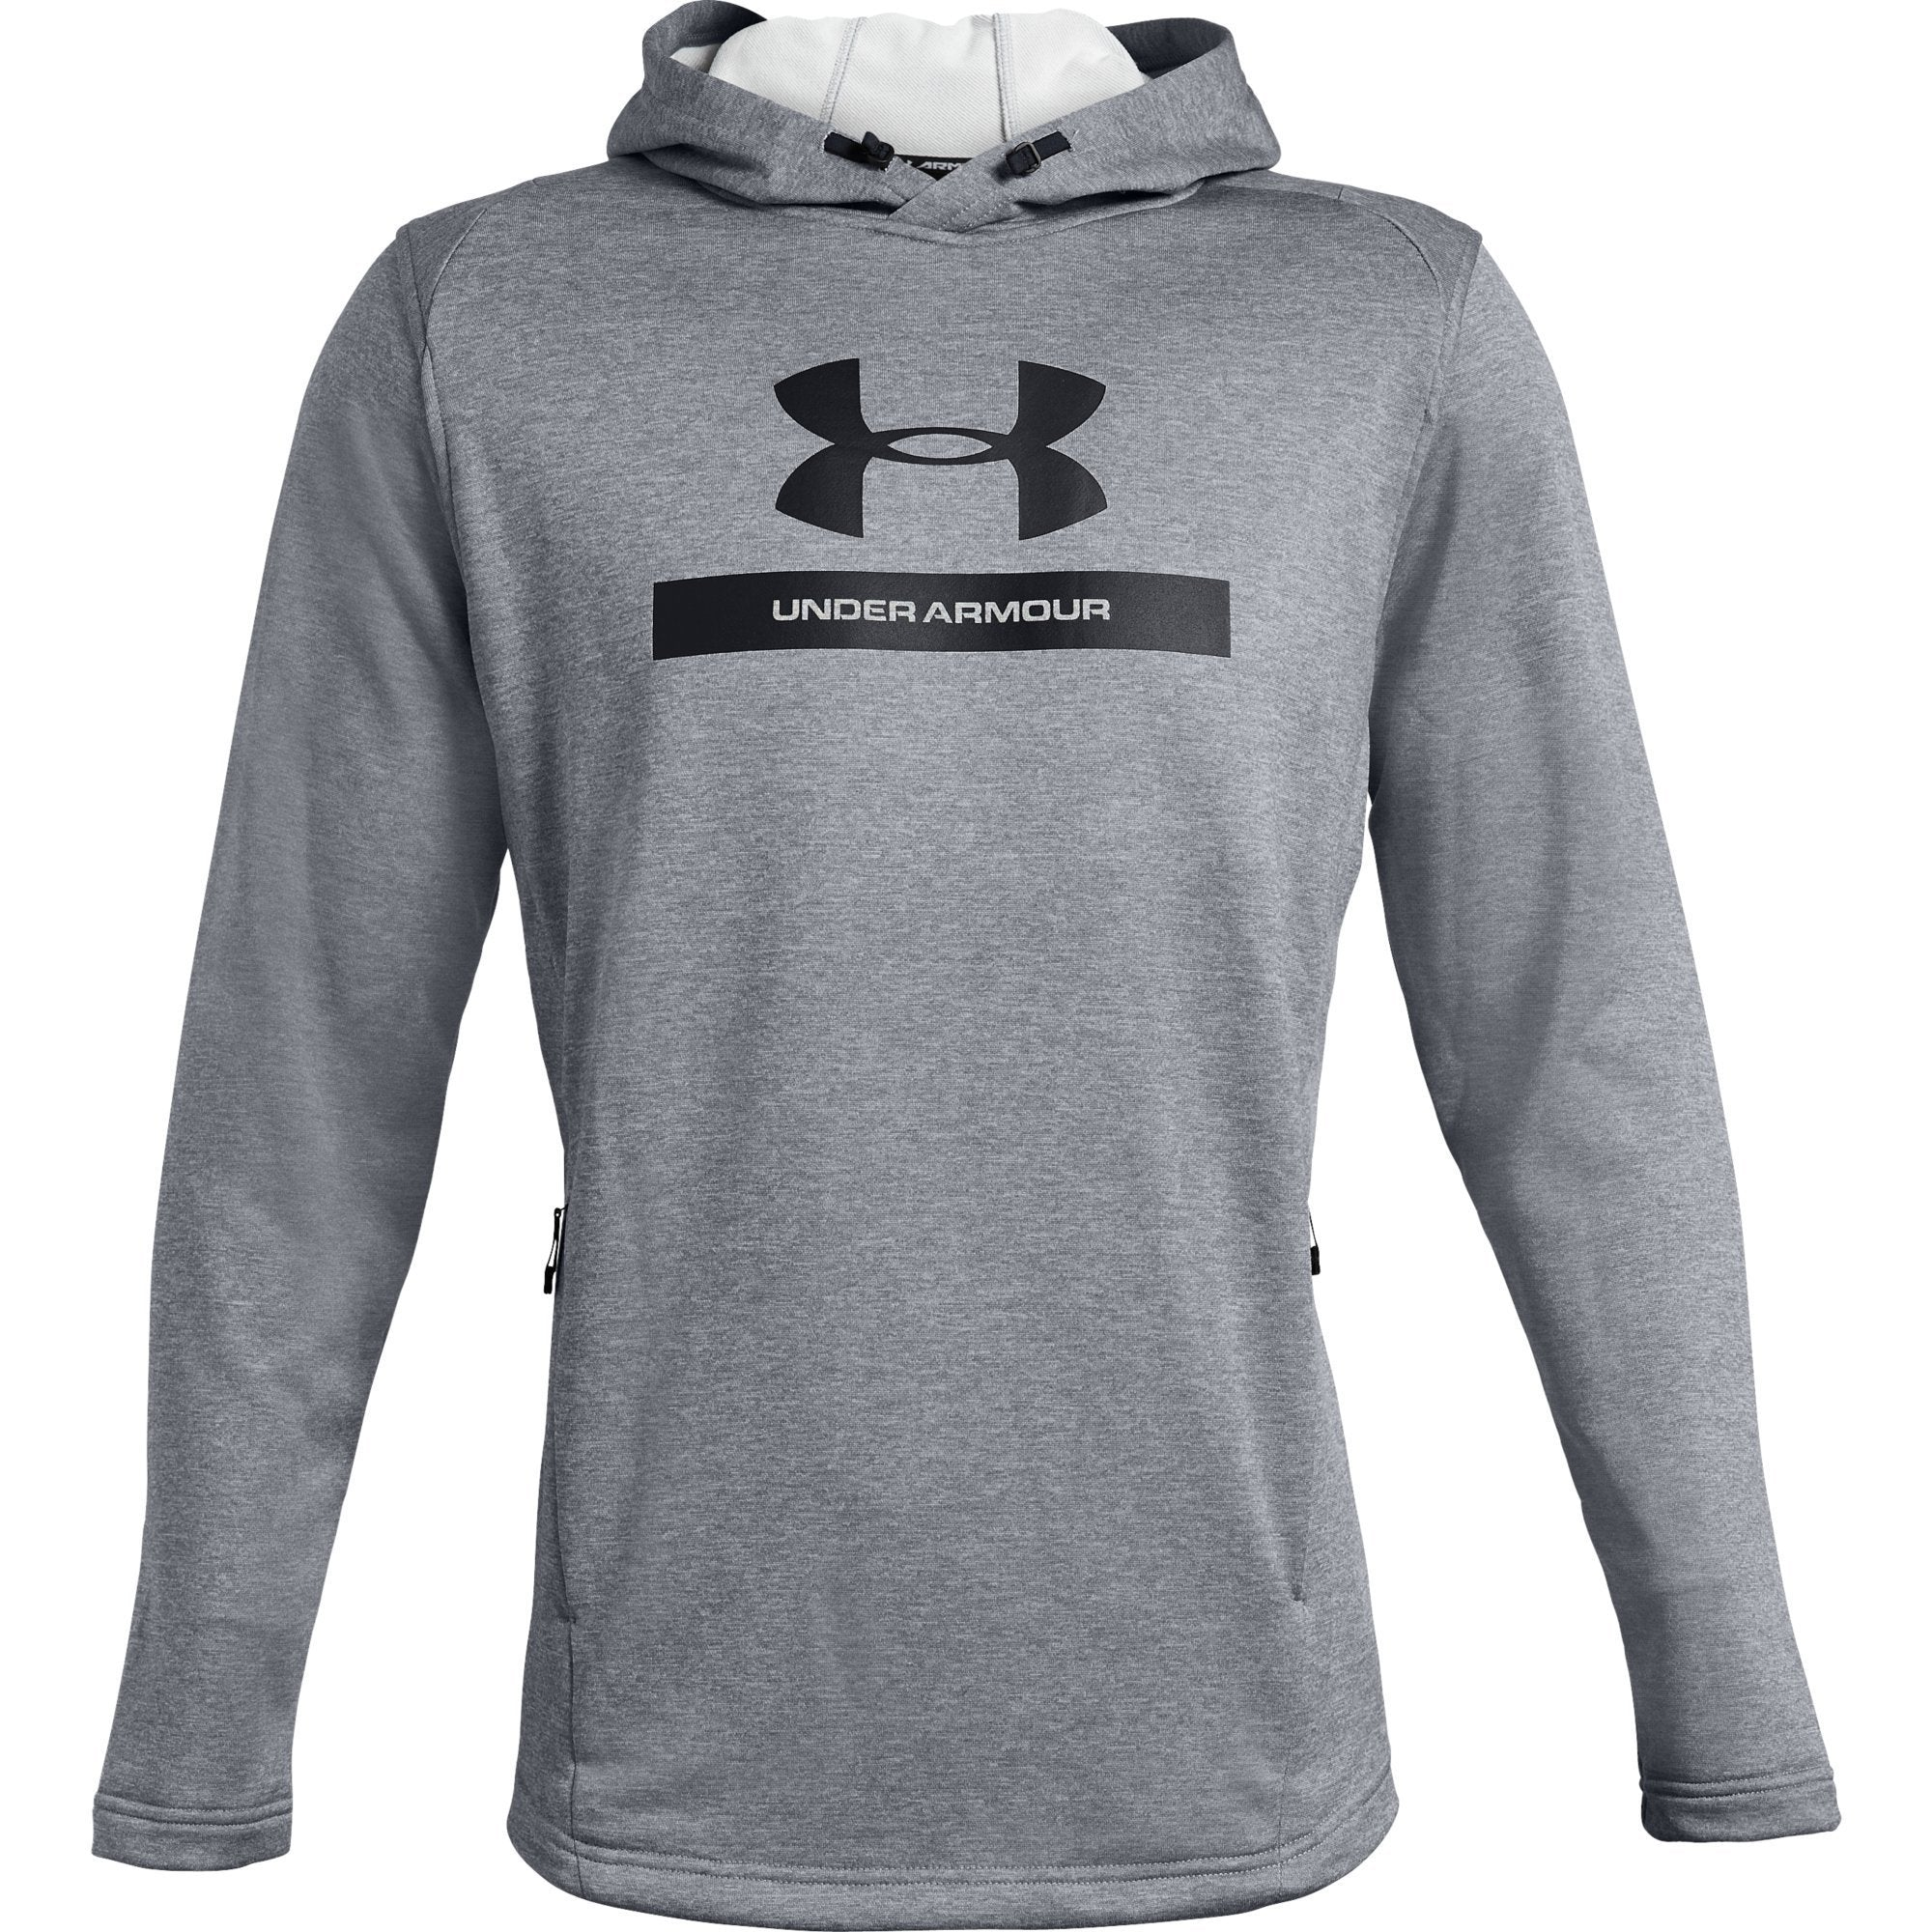 Under Armour MK-1 Terry Graphic Hoodie - Steel